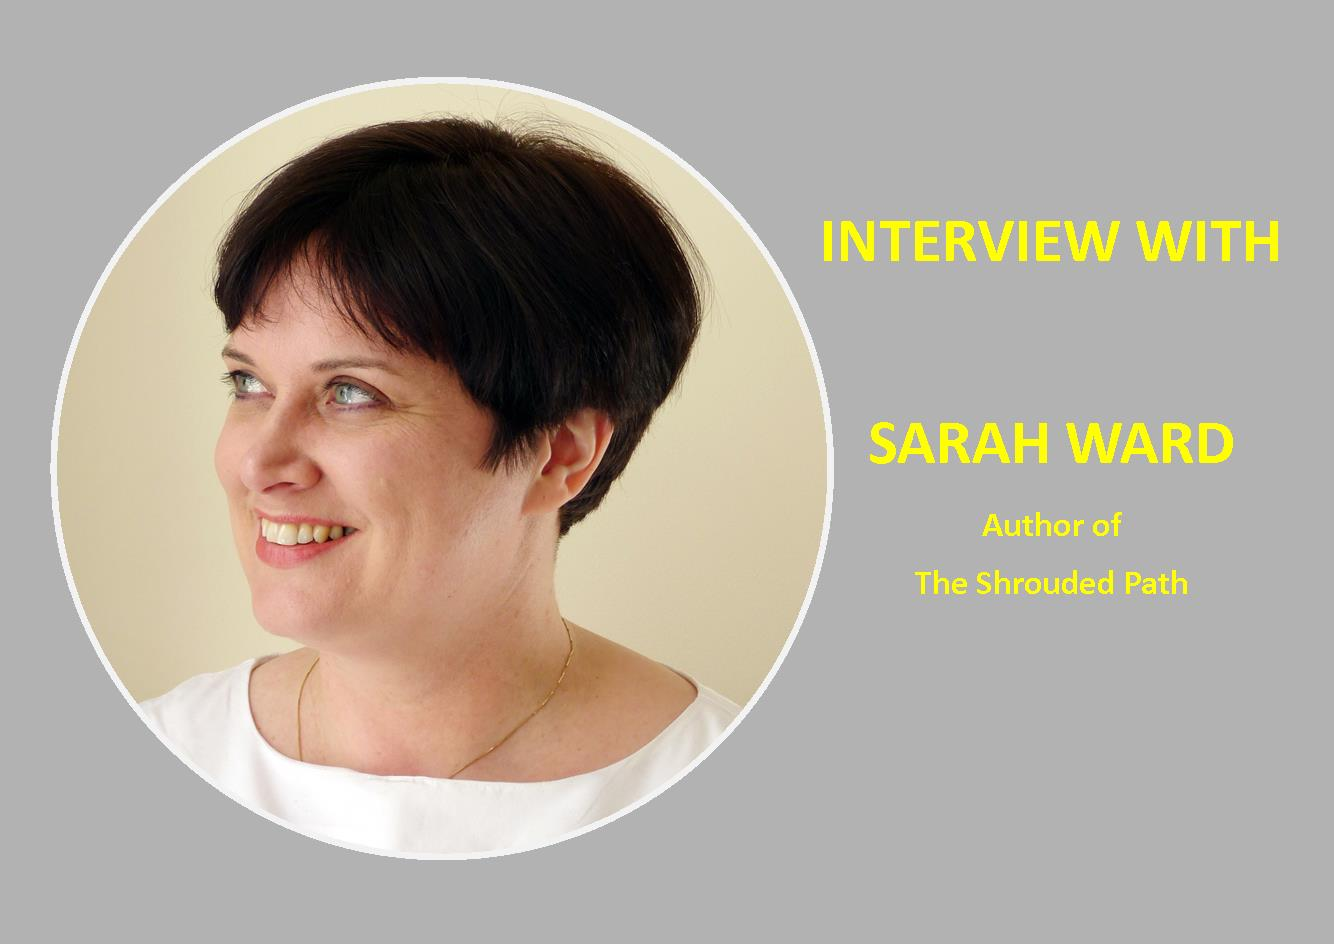 Interview with SARAH WARD